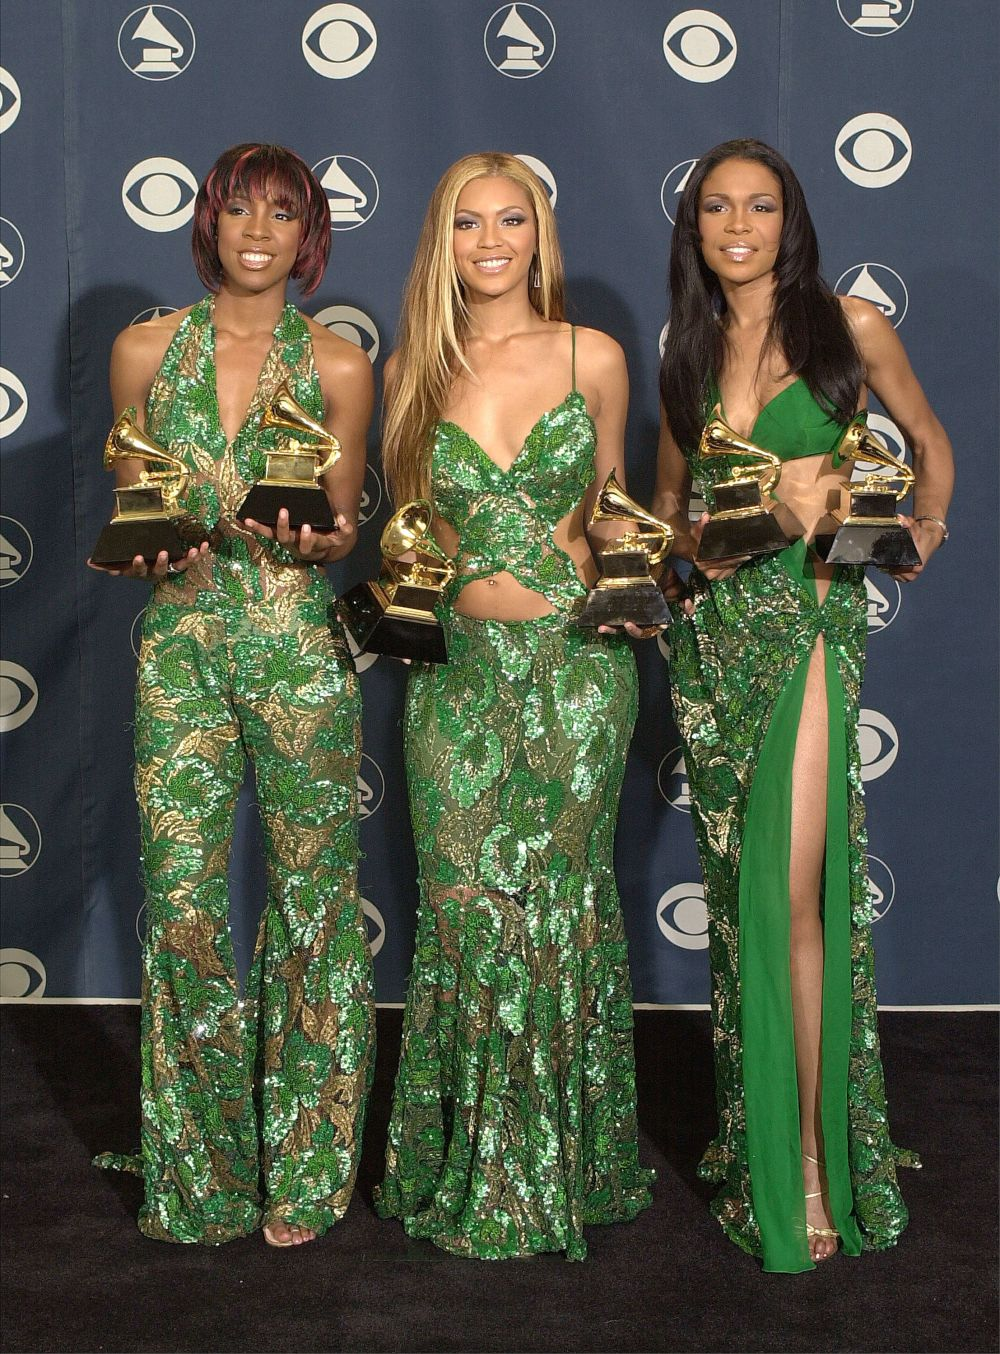 Posing with their awards at the 43rd annual Grammy Awards at Staples Center in Los Angeles.